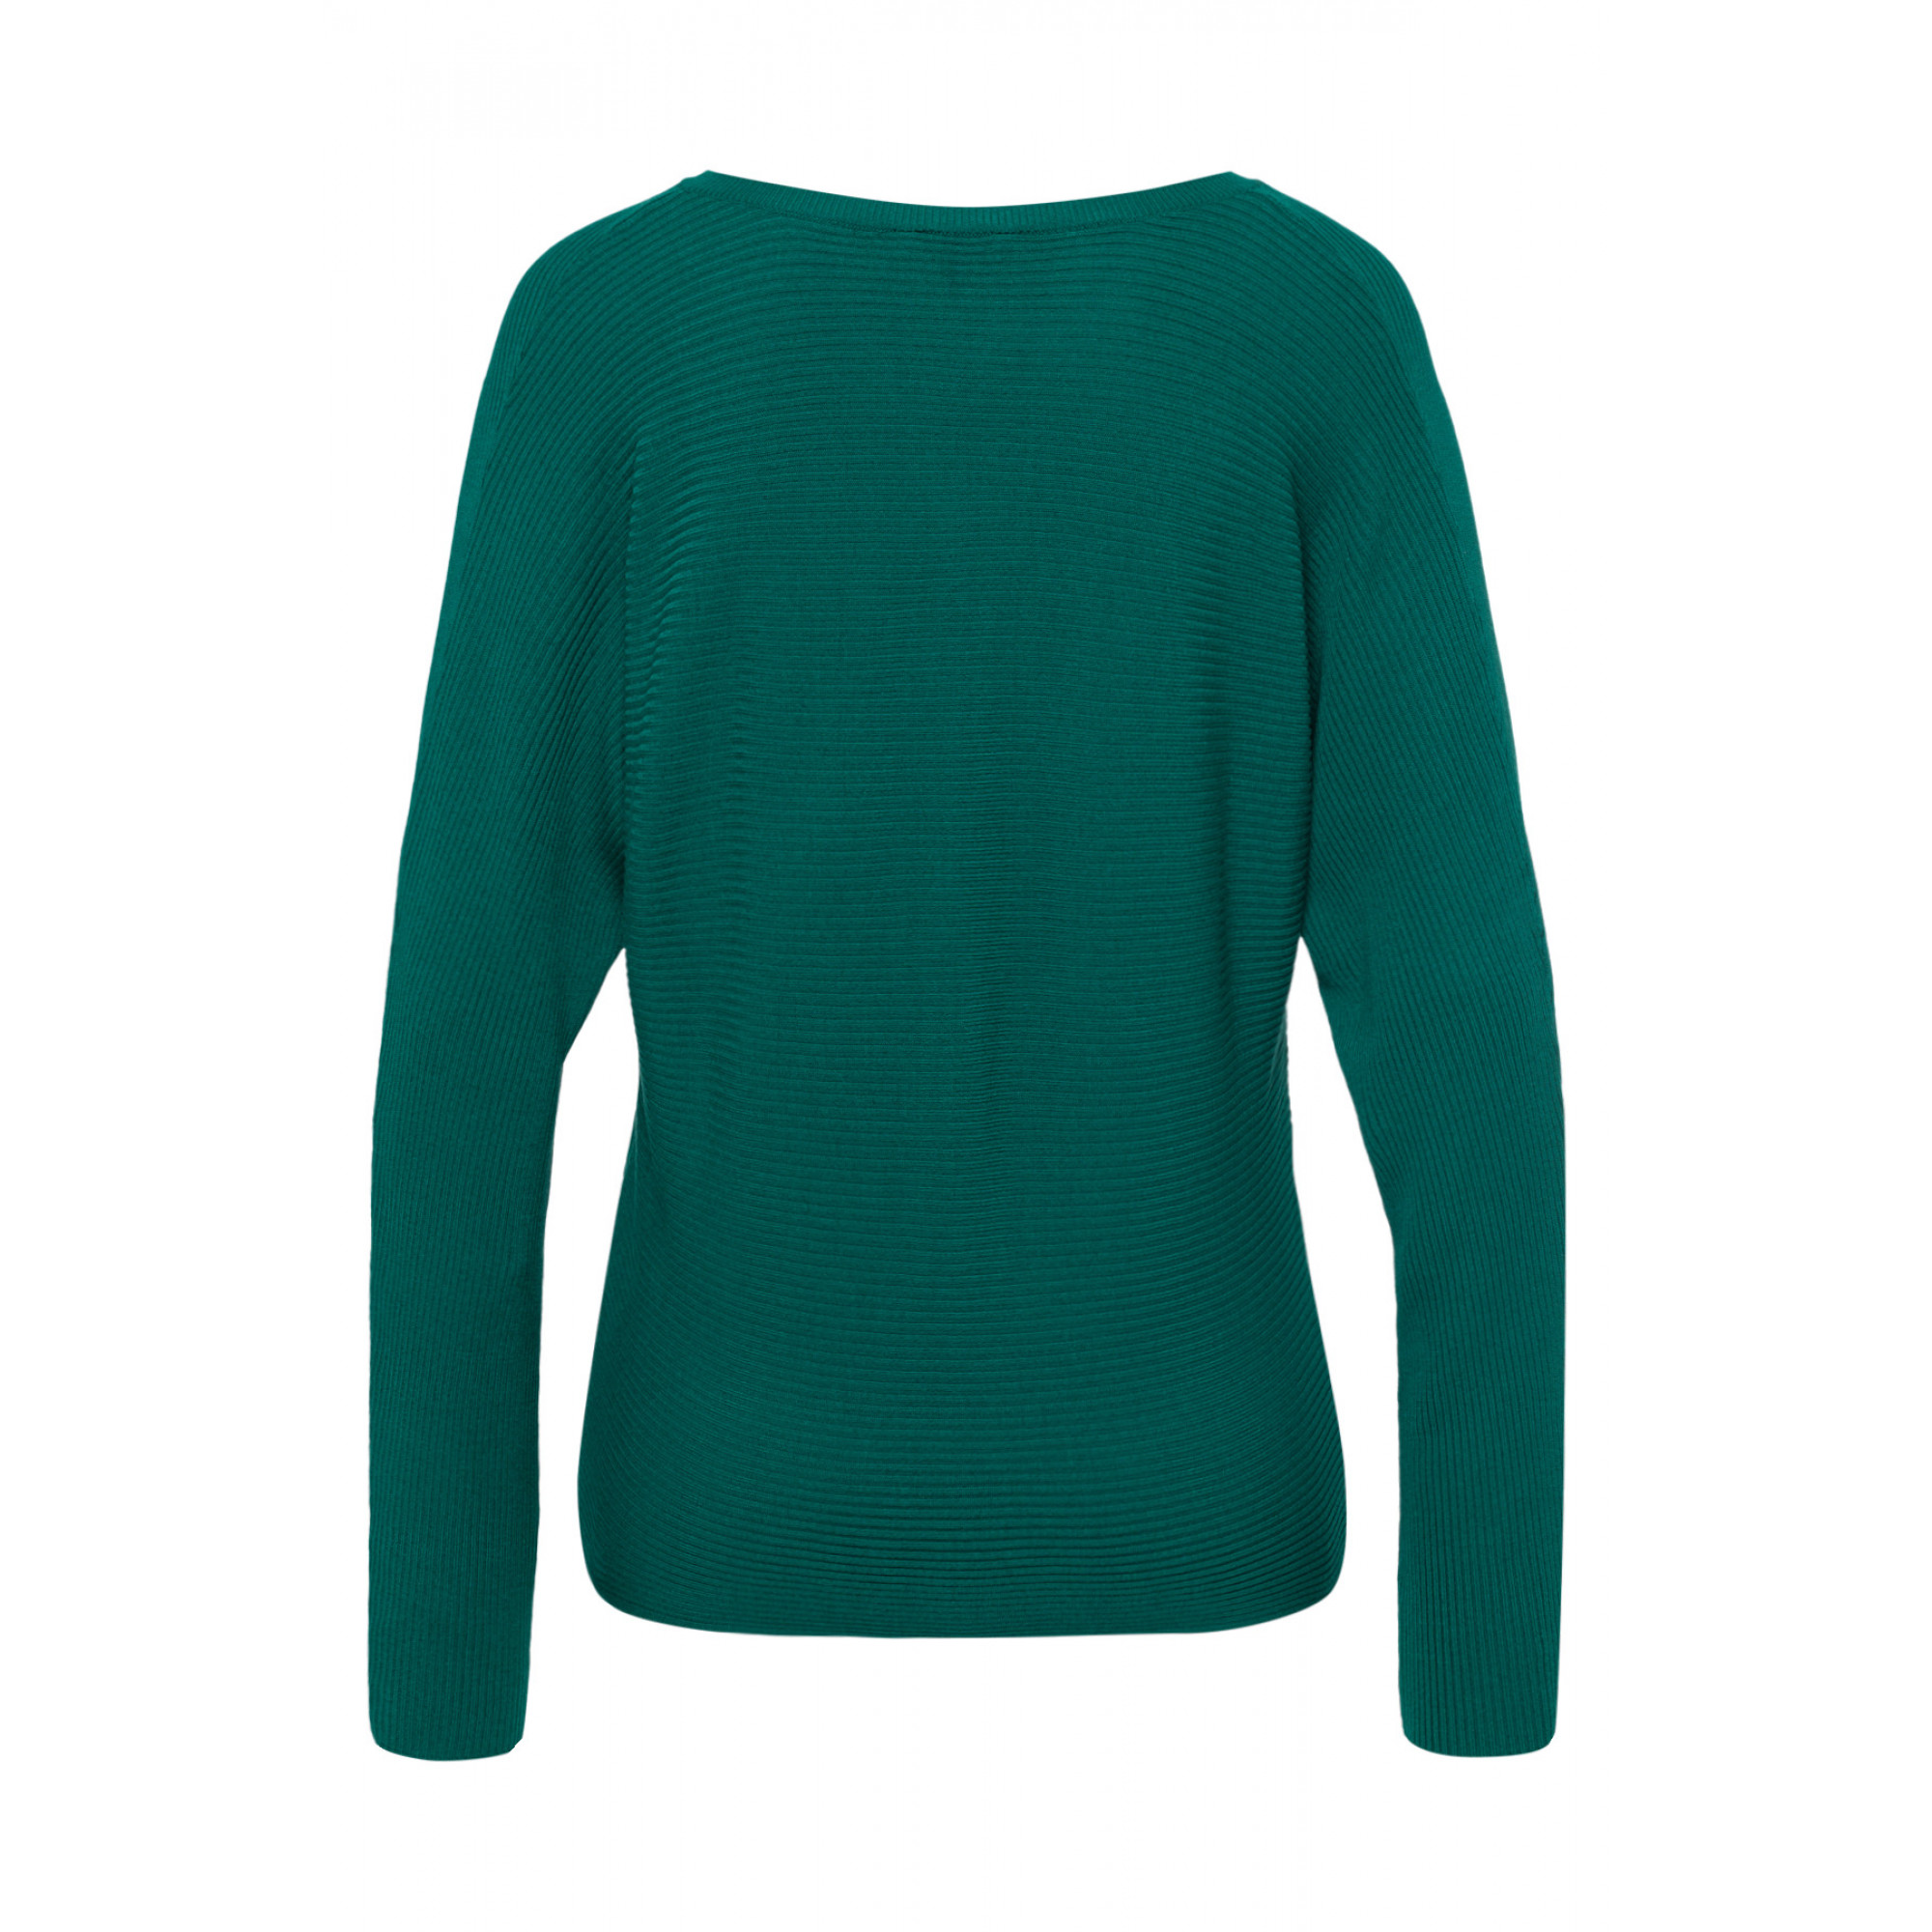 V-Neck Pulli, emerald green 91091002-0655 2